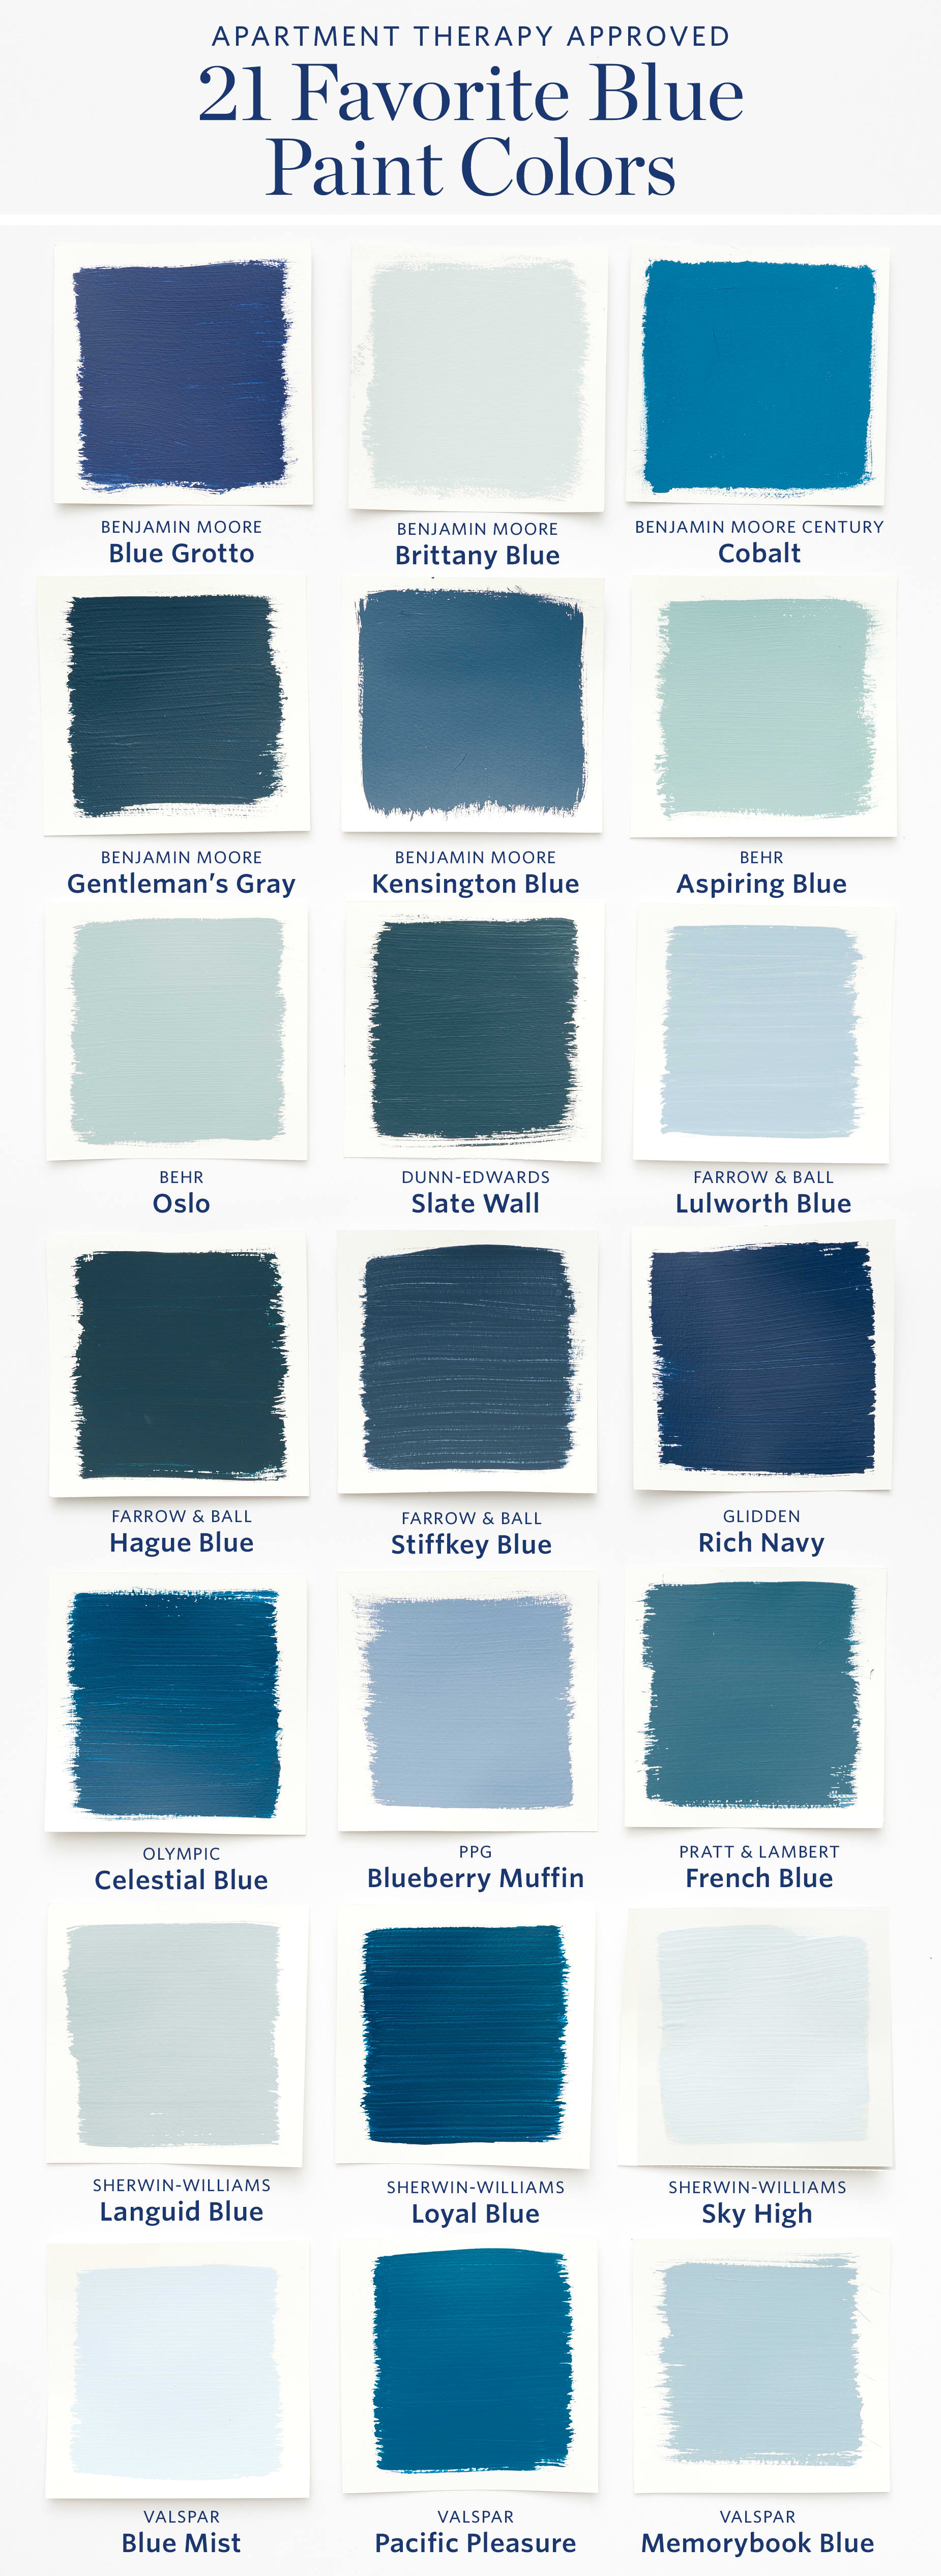 color cheat sheet the best blue paint colors apartment therapy. Black Bedroom Furniture Sets. Home Design Ideas